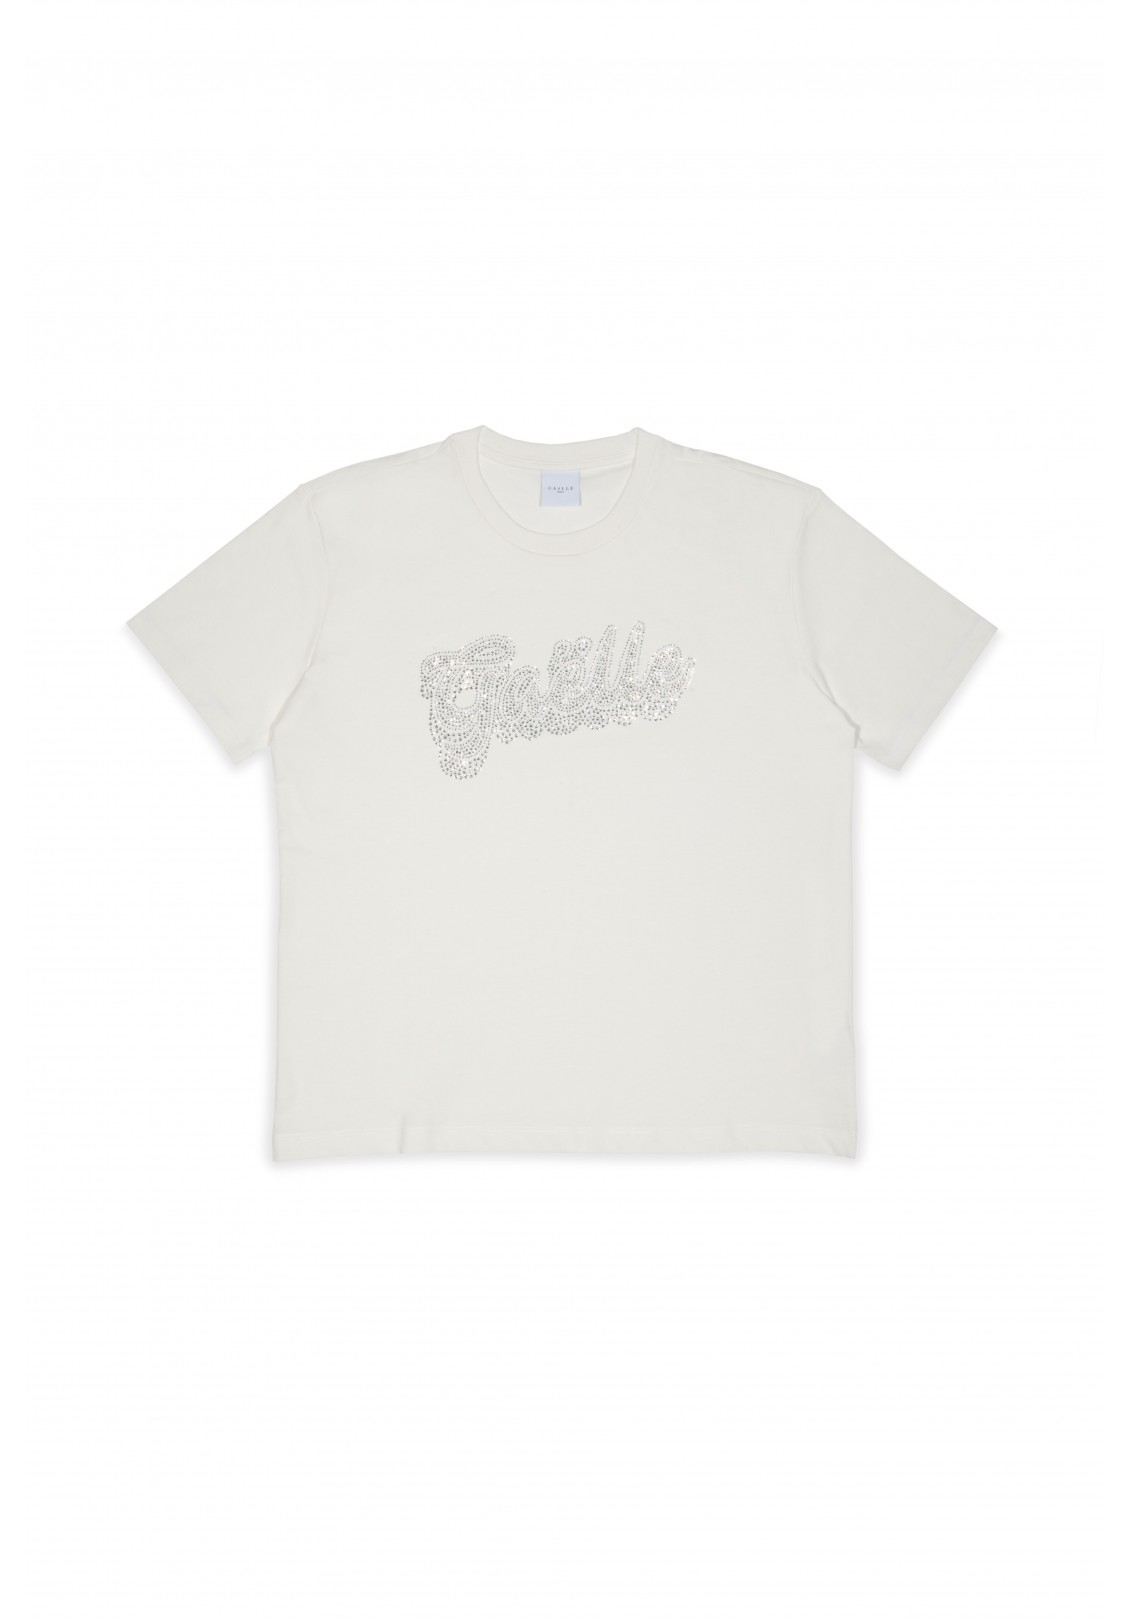 T-SHIRT - GBD5170 - GAELLE PARIS